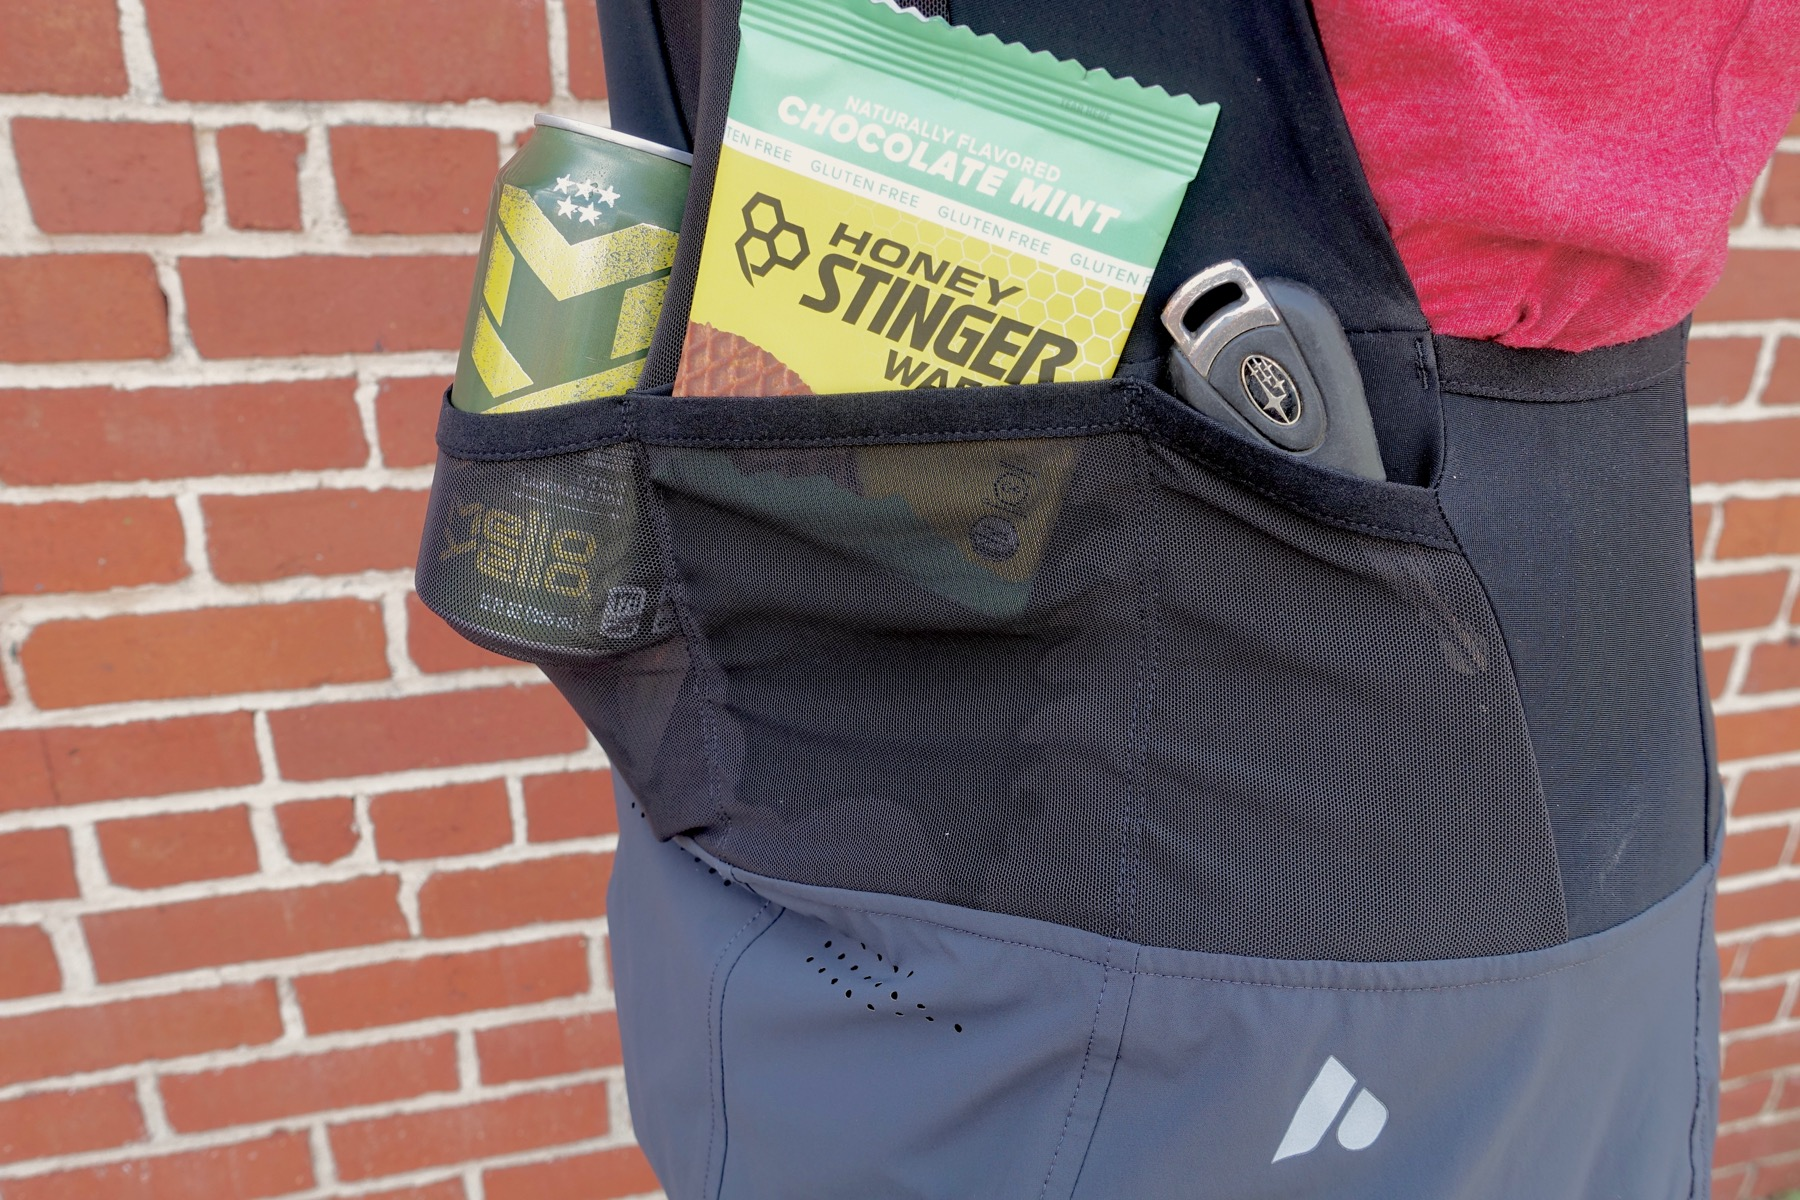 Aussie Grit Ignite Shorts Combine Bib Chamois and Baggy Shorts in One [Review] - Singletracks Mountain Bike News